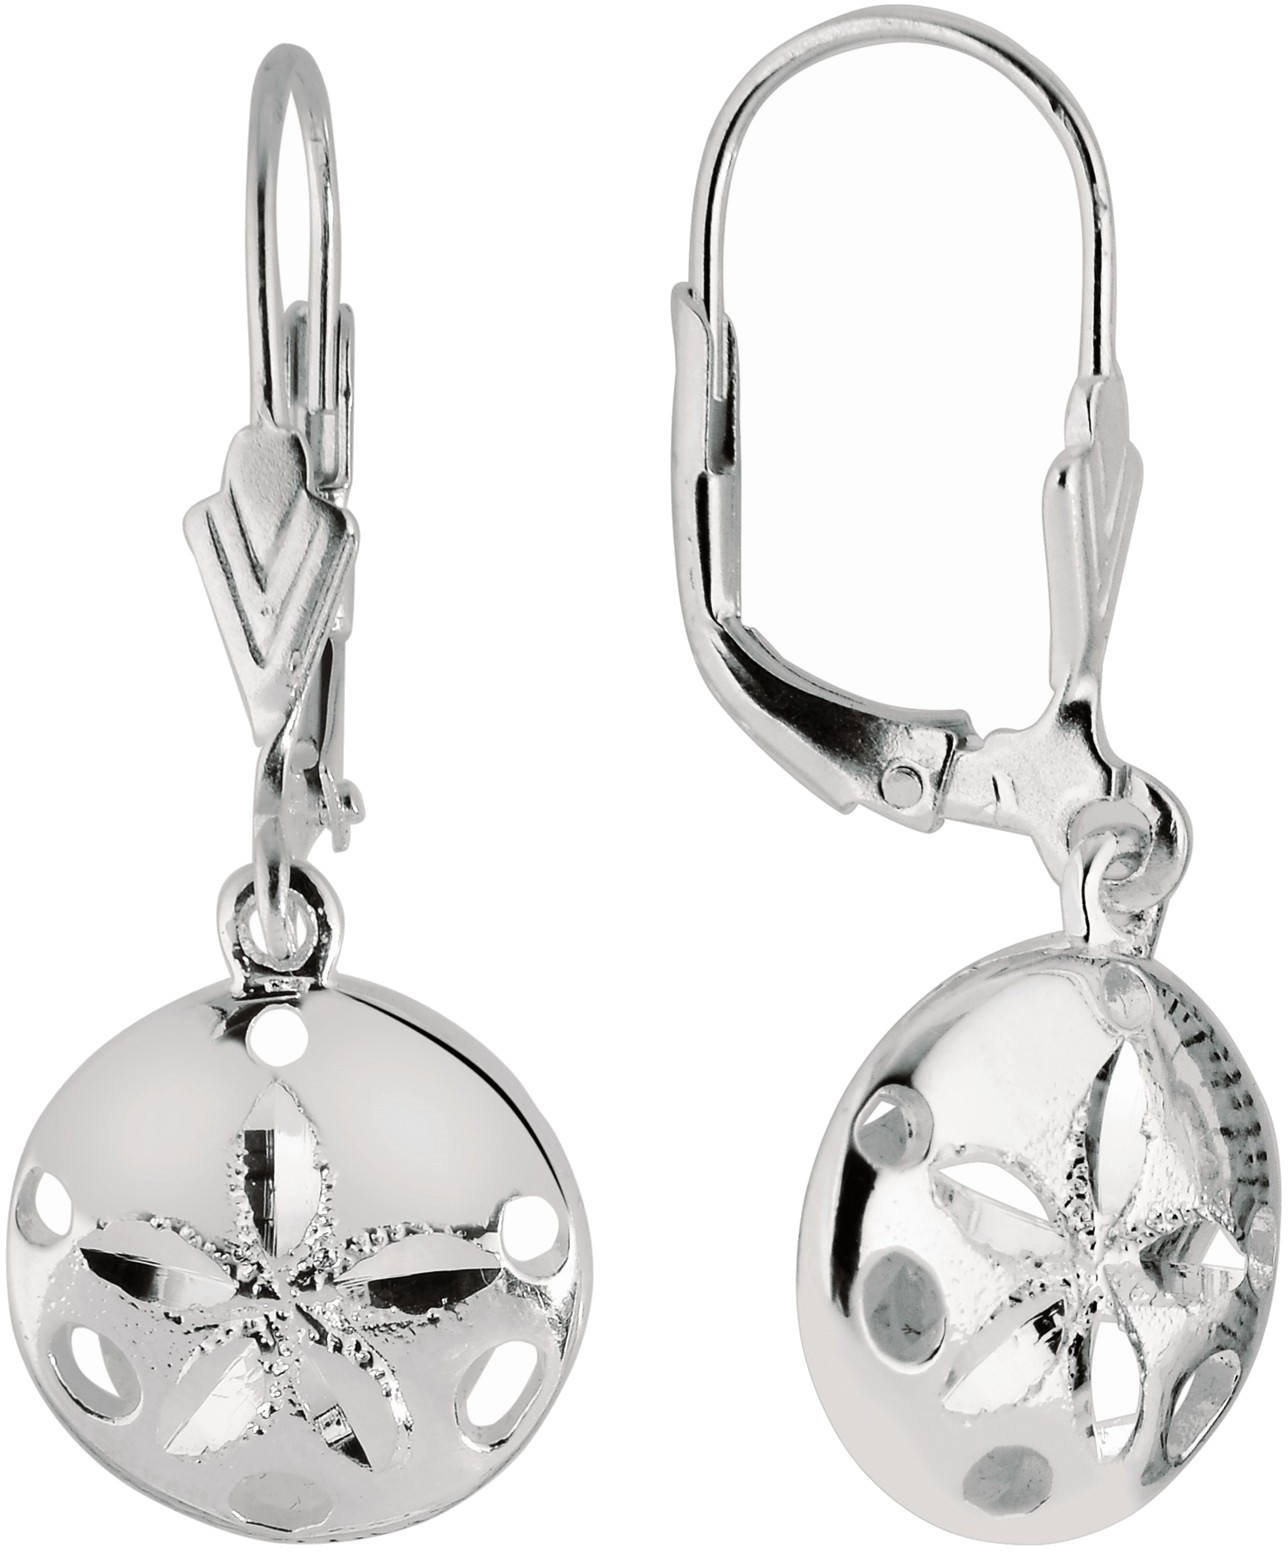 Silver Rhodium Plated Shiny Textured Small Sand Dollar Sea Life Leverback Earrings